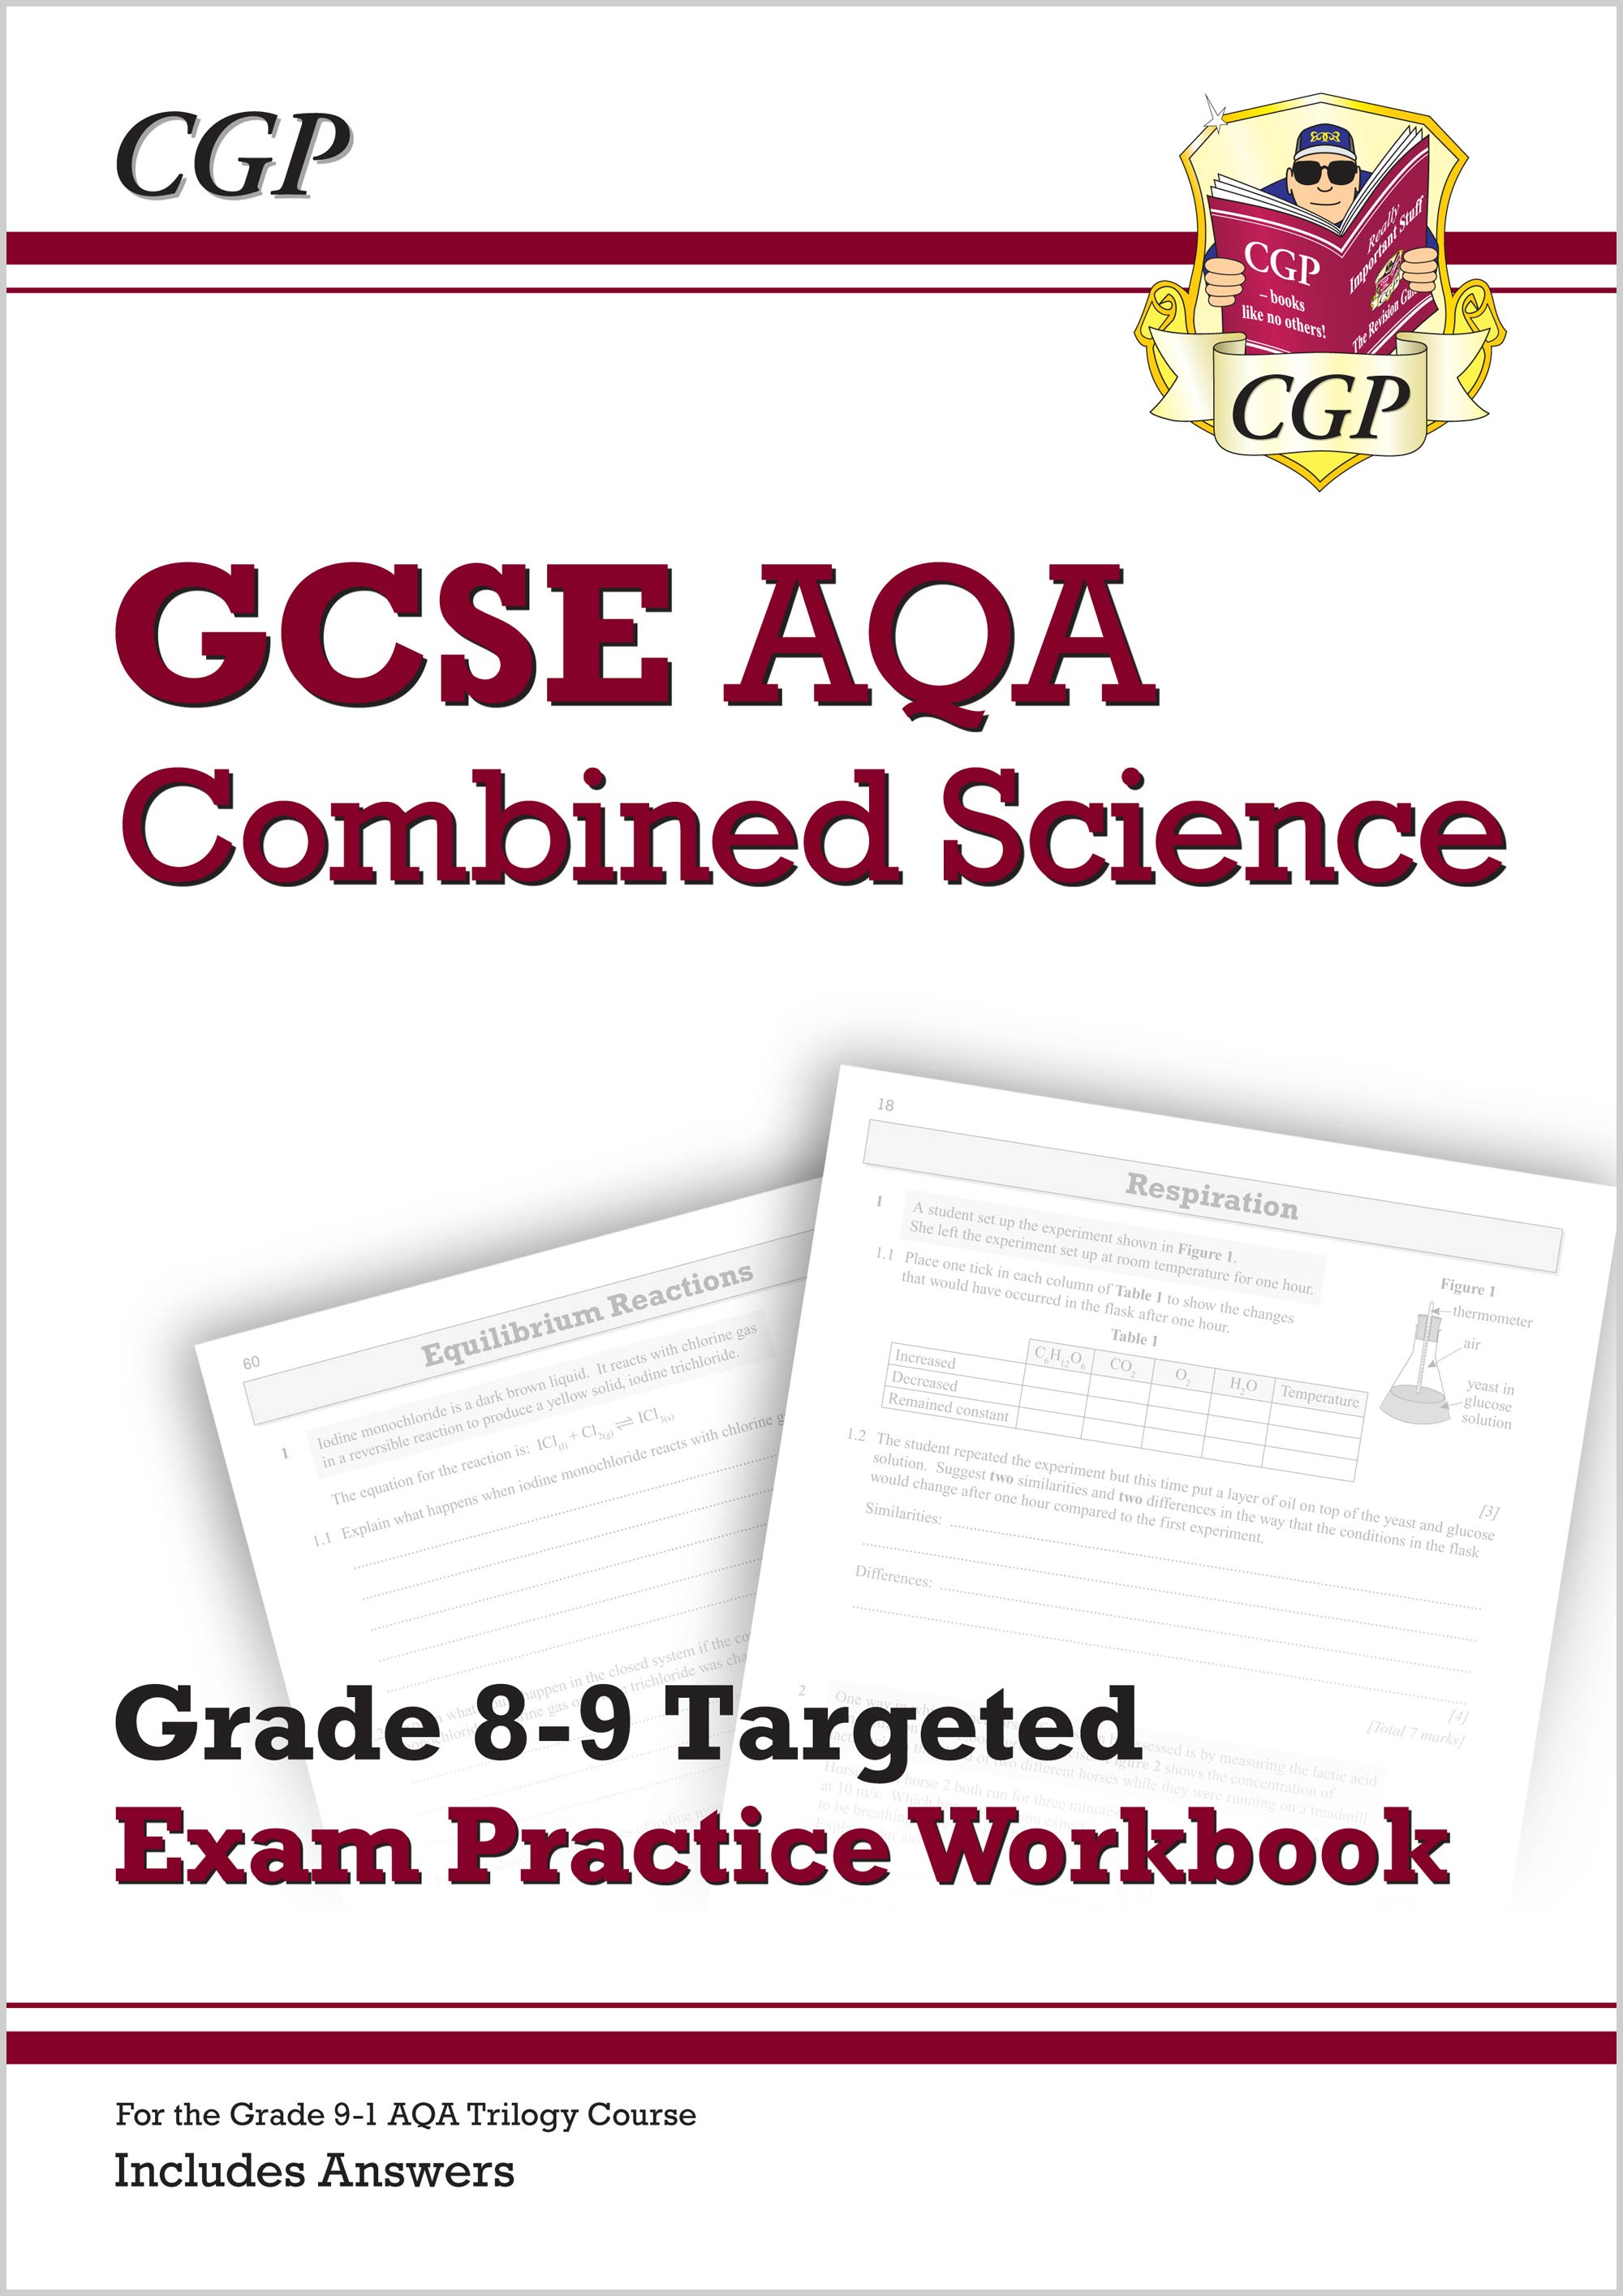 SA9Q41 - New GCSE Combined Science AQA Grade 8-9 Targeted Exam Practice Workbook (includes Answers)